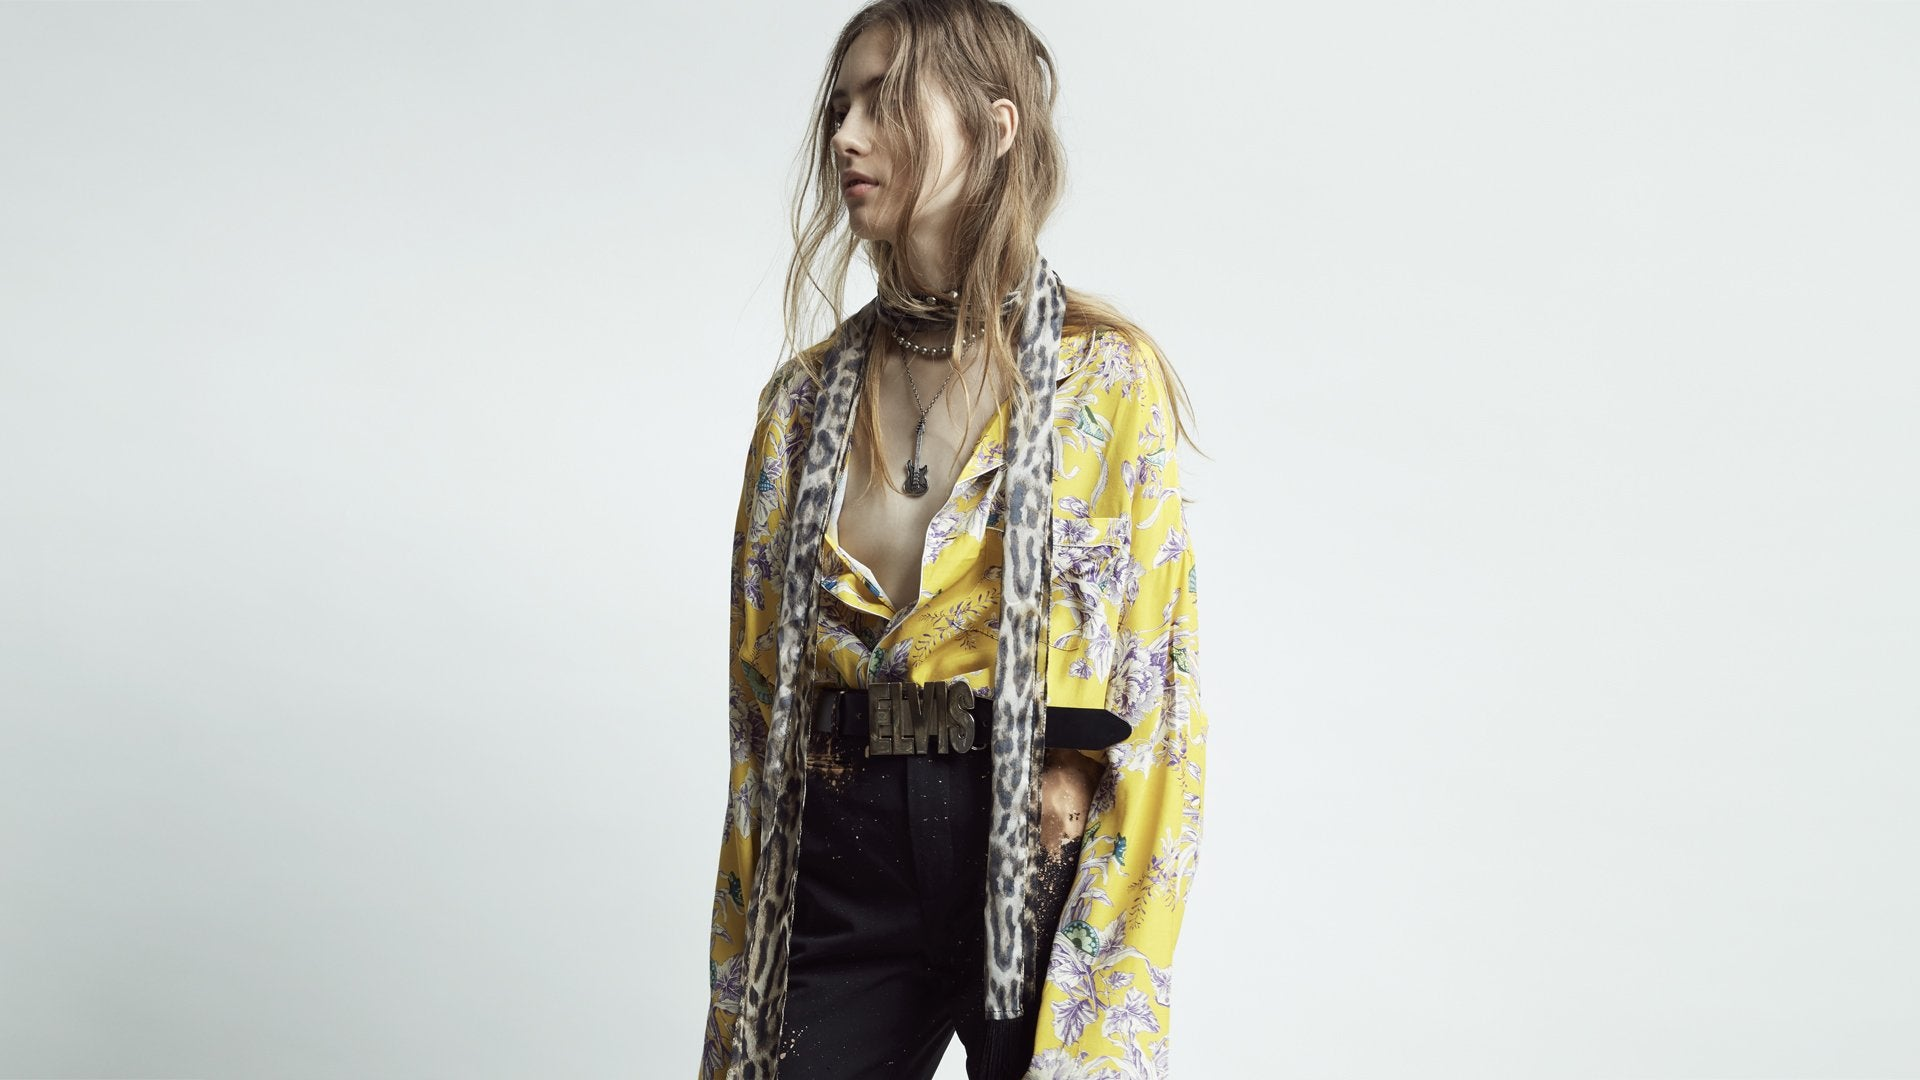 Womens PF19 Lookbook Image 23